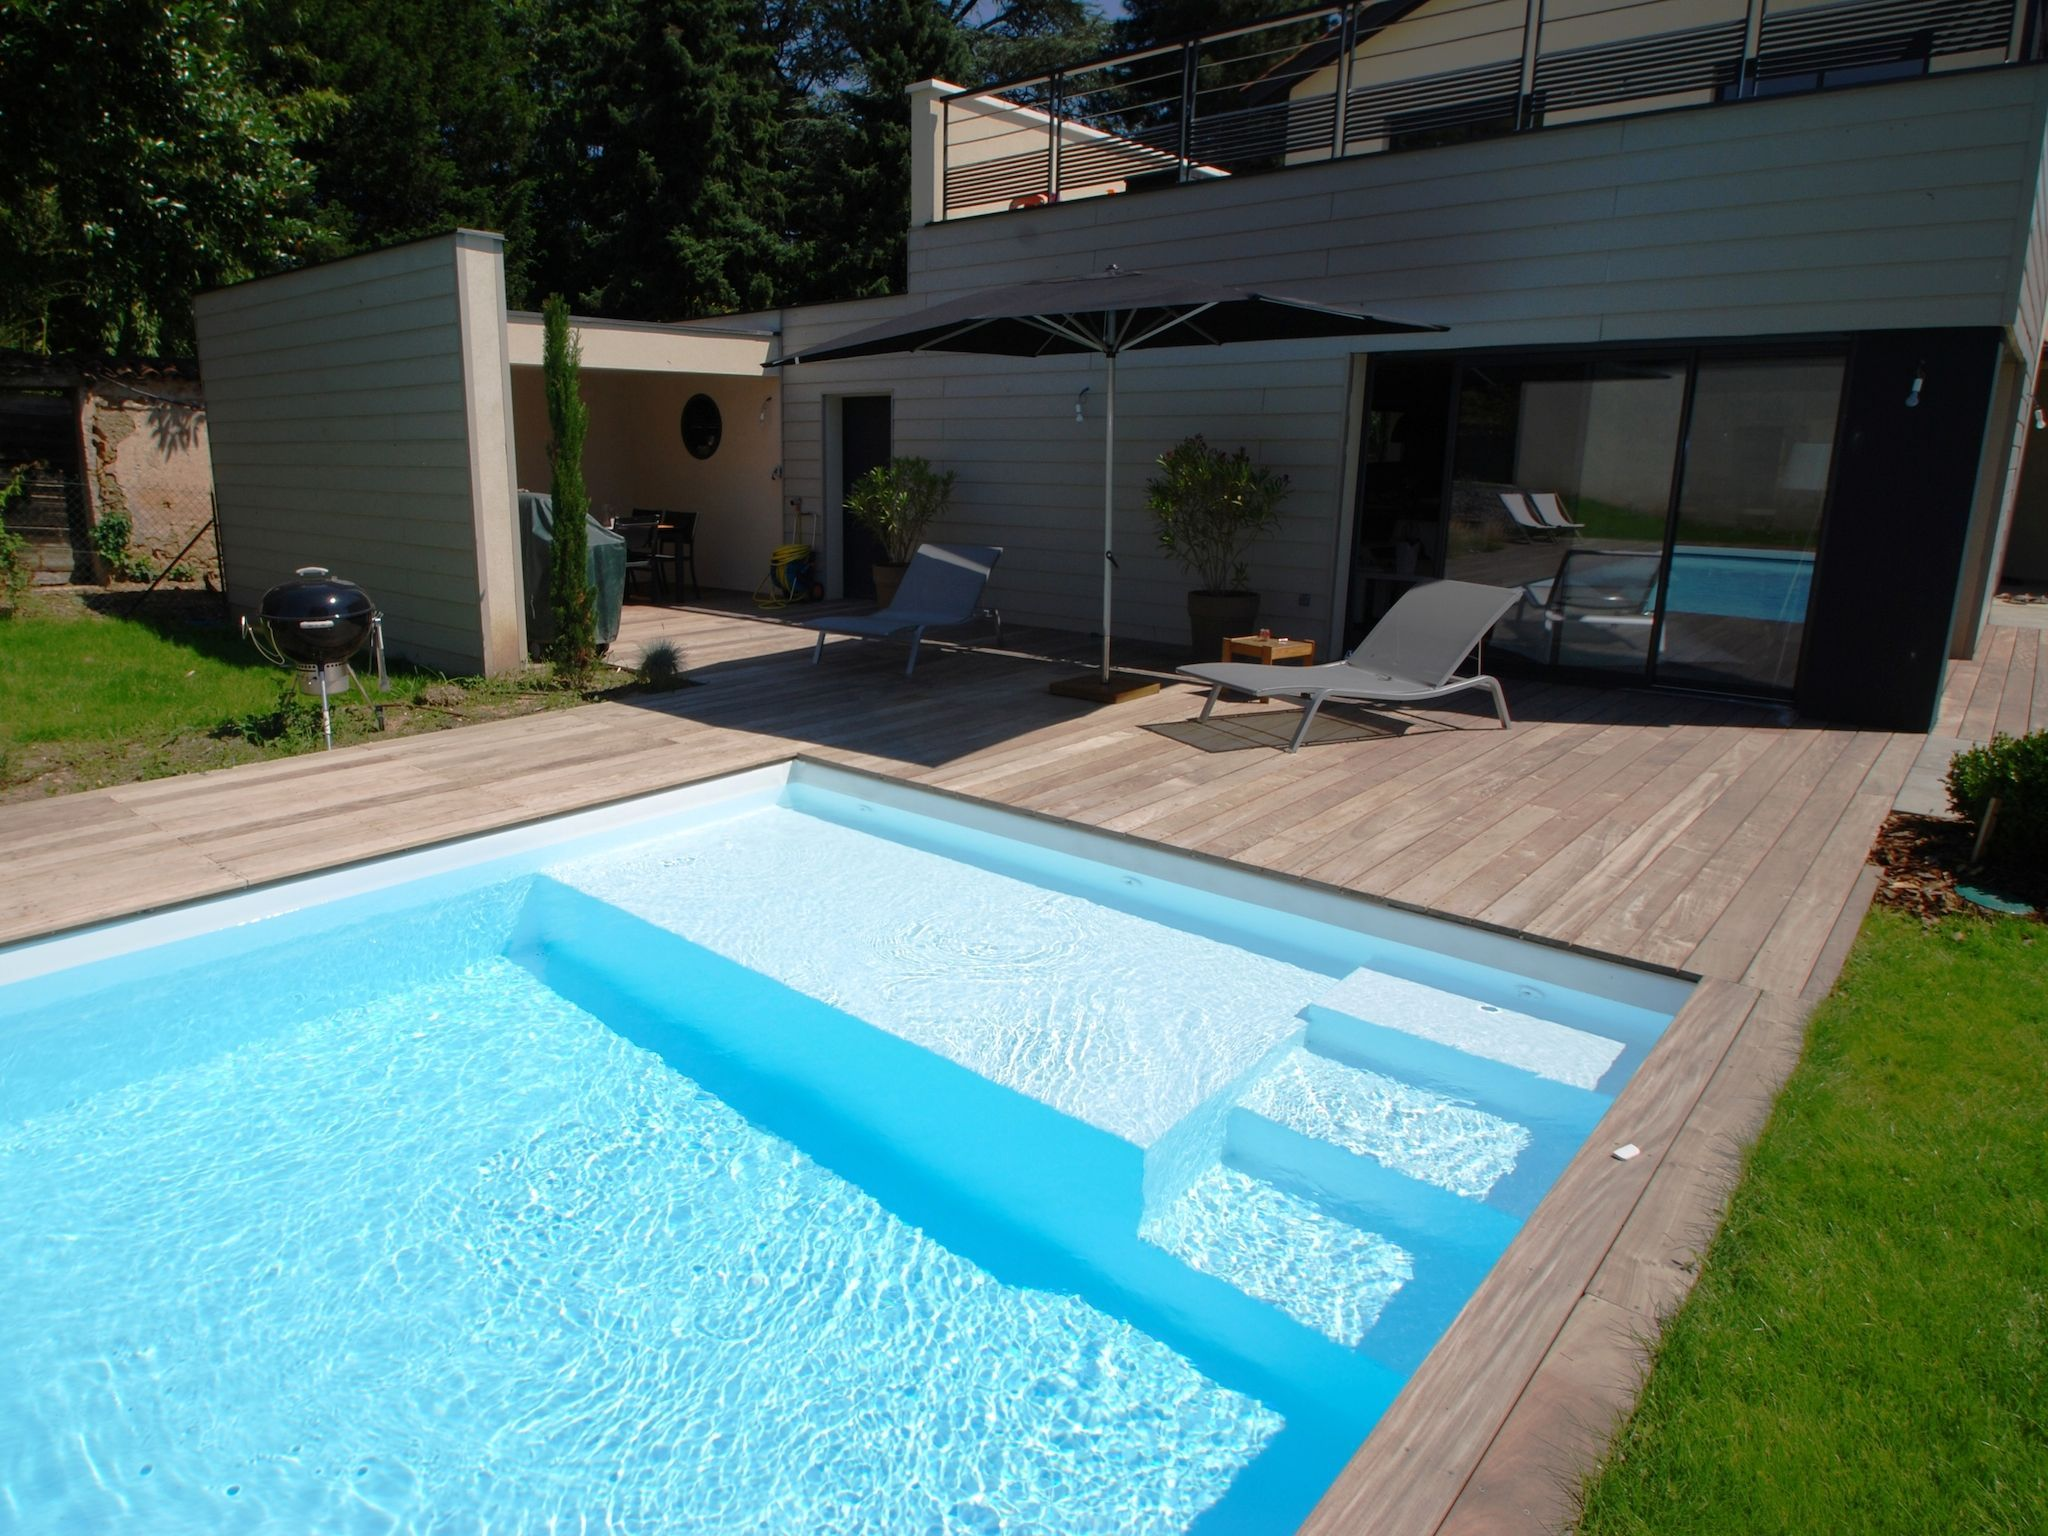 Tarif piscine desjoyaux 8x4 ragrage de la piscine with for Prix liner piscine sur mesure